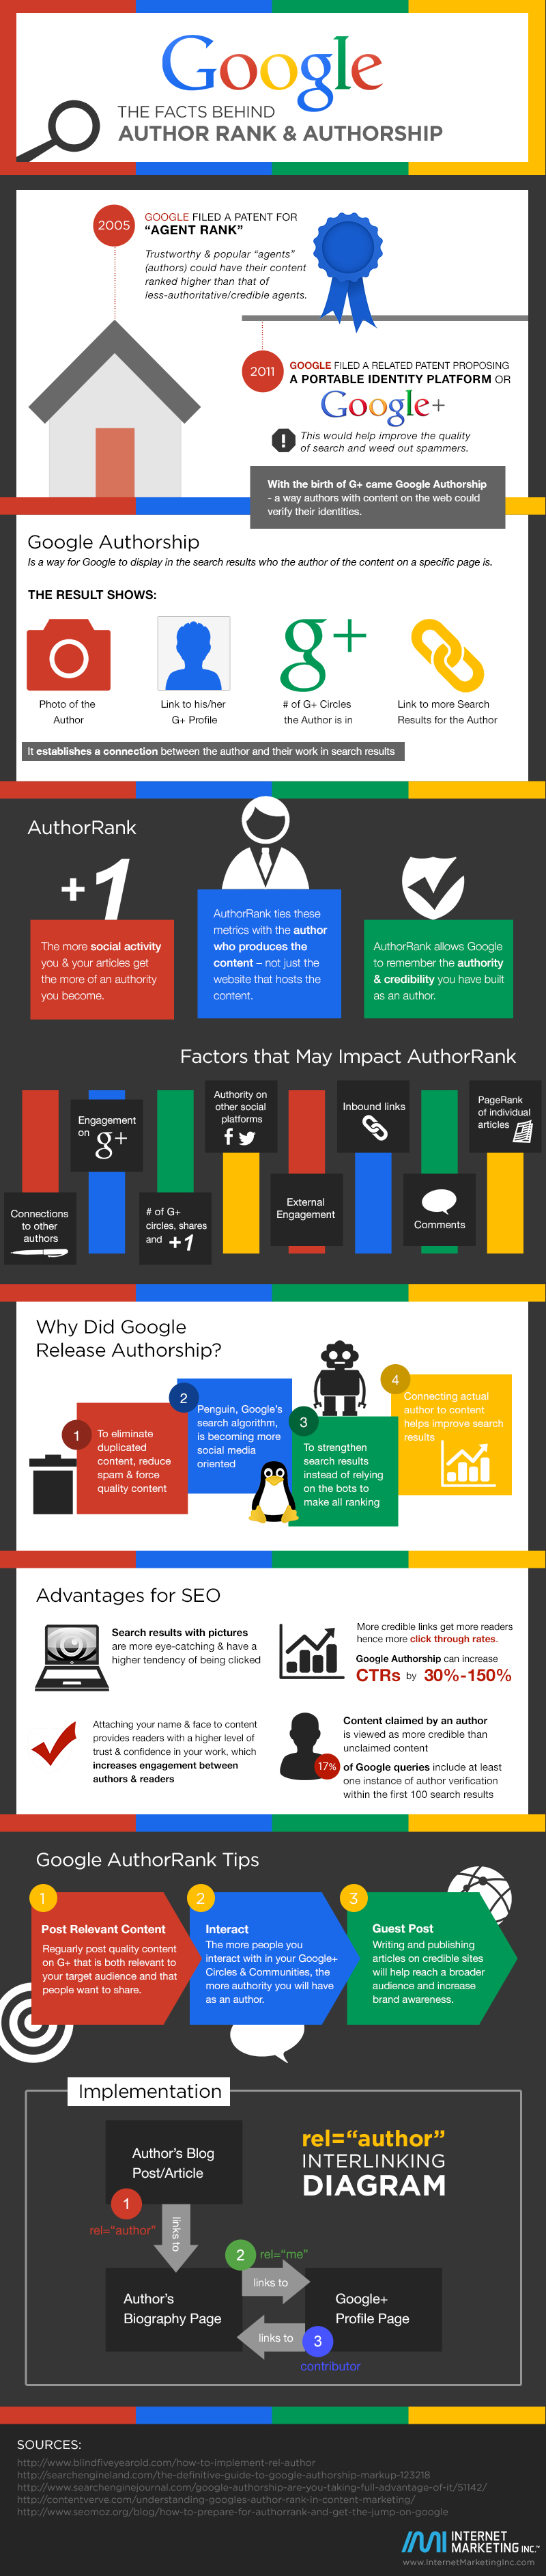 The Facts Behind Google Author Rank & Authorship